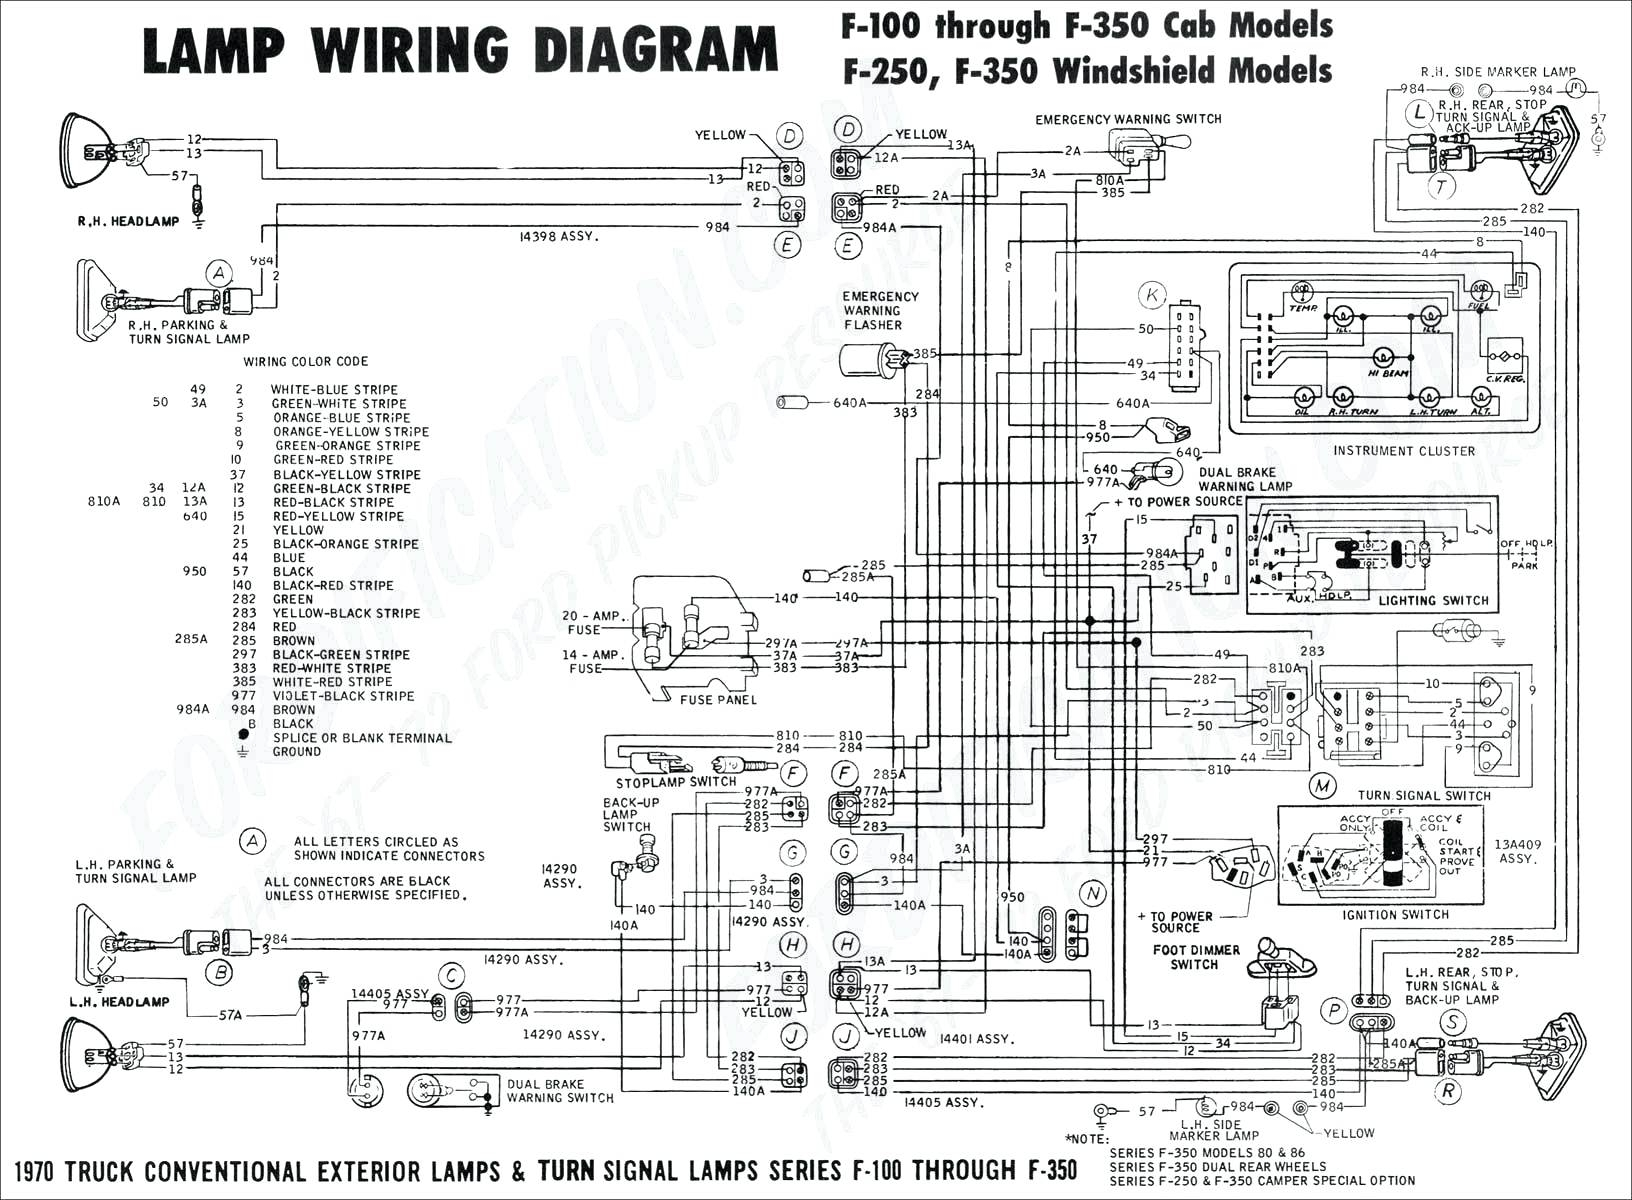 1996 ford f 150 starter wiring diagram 1996 ford f 150 chassis wiring diagram